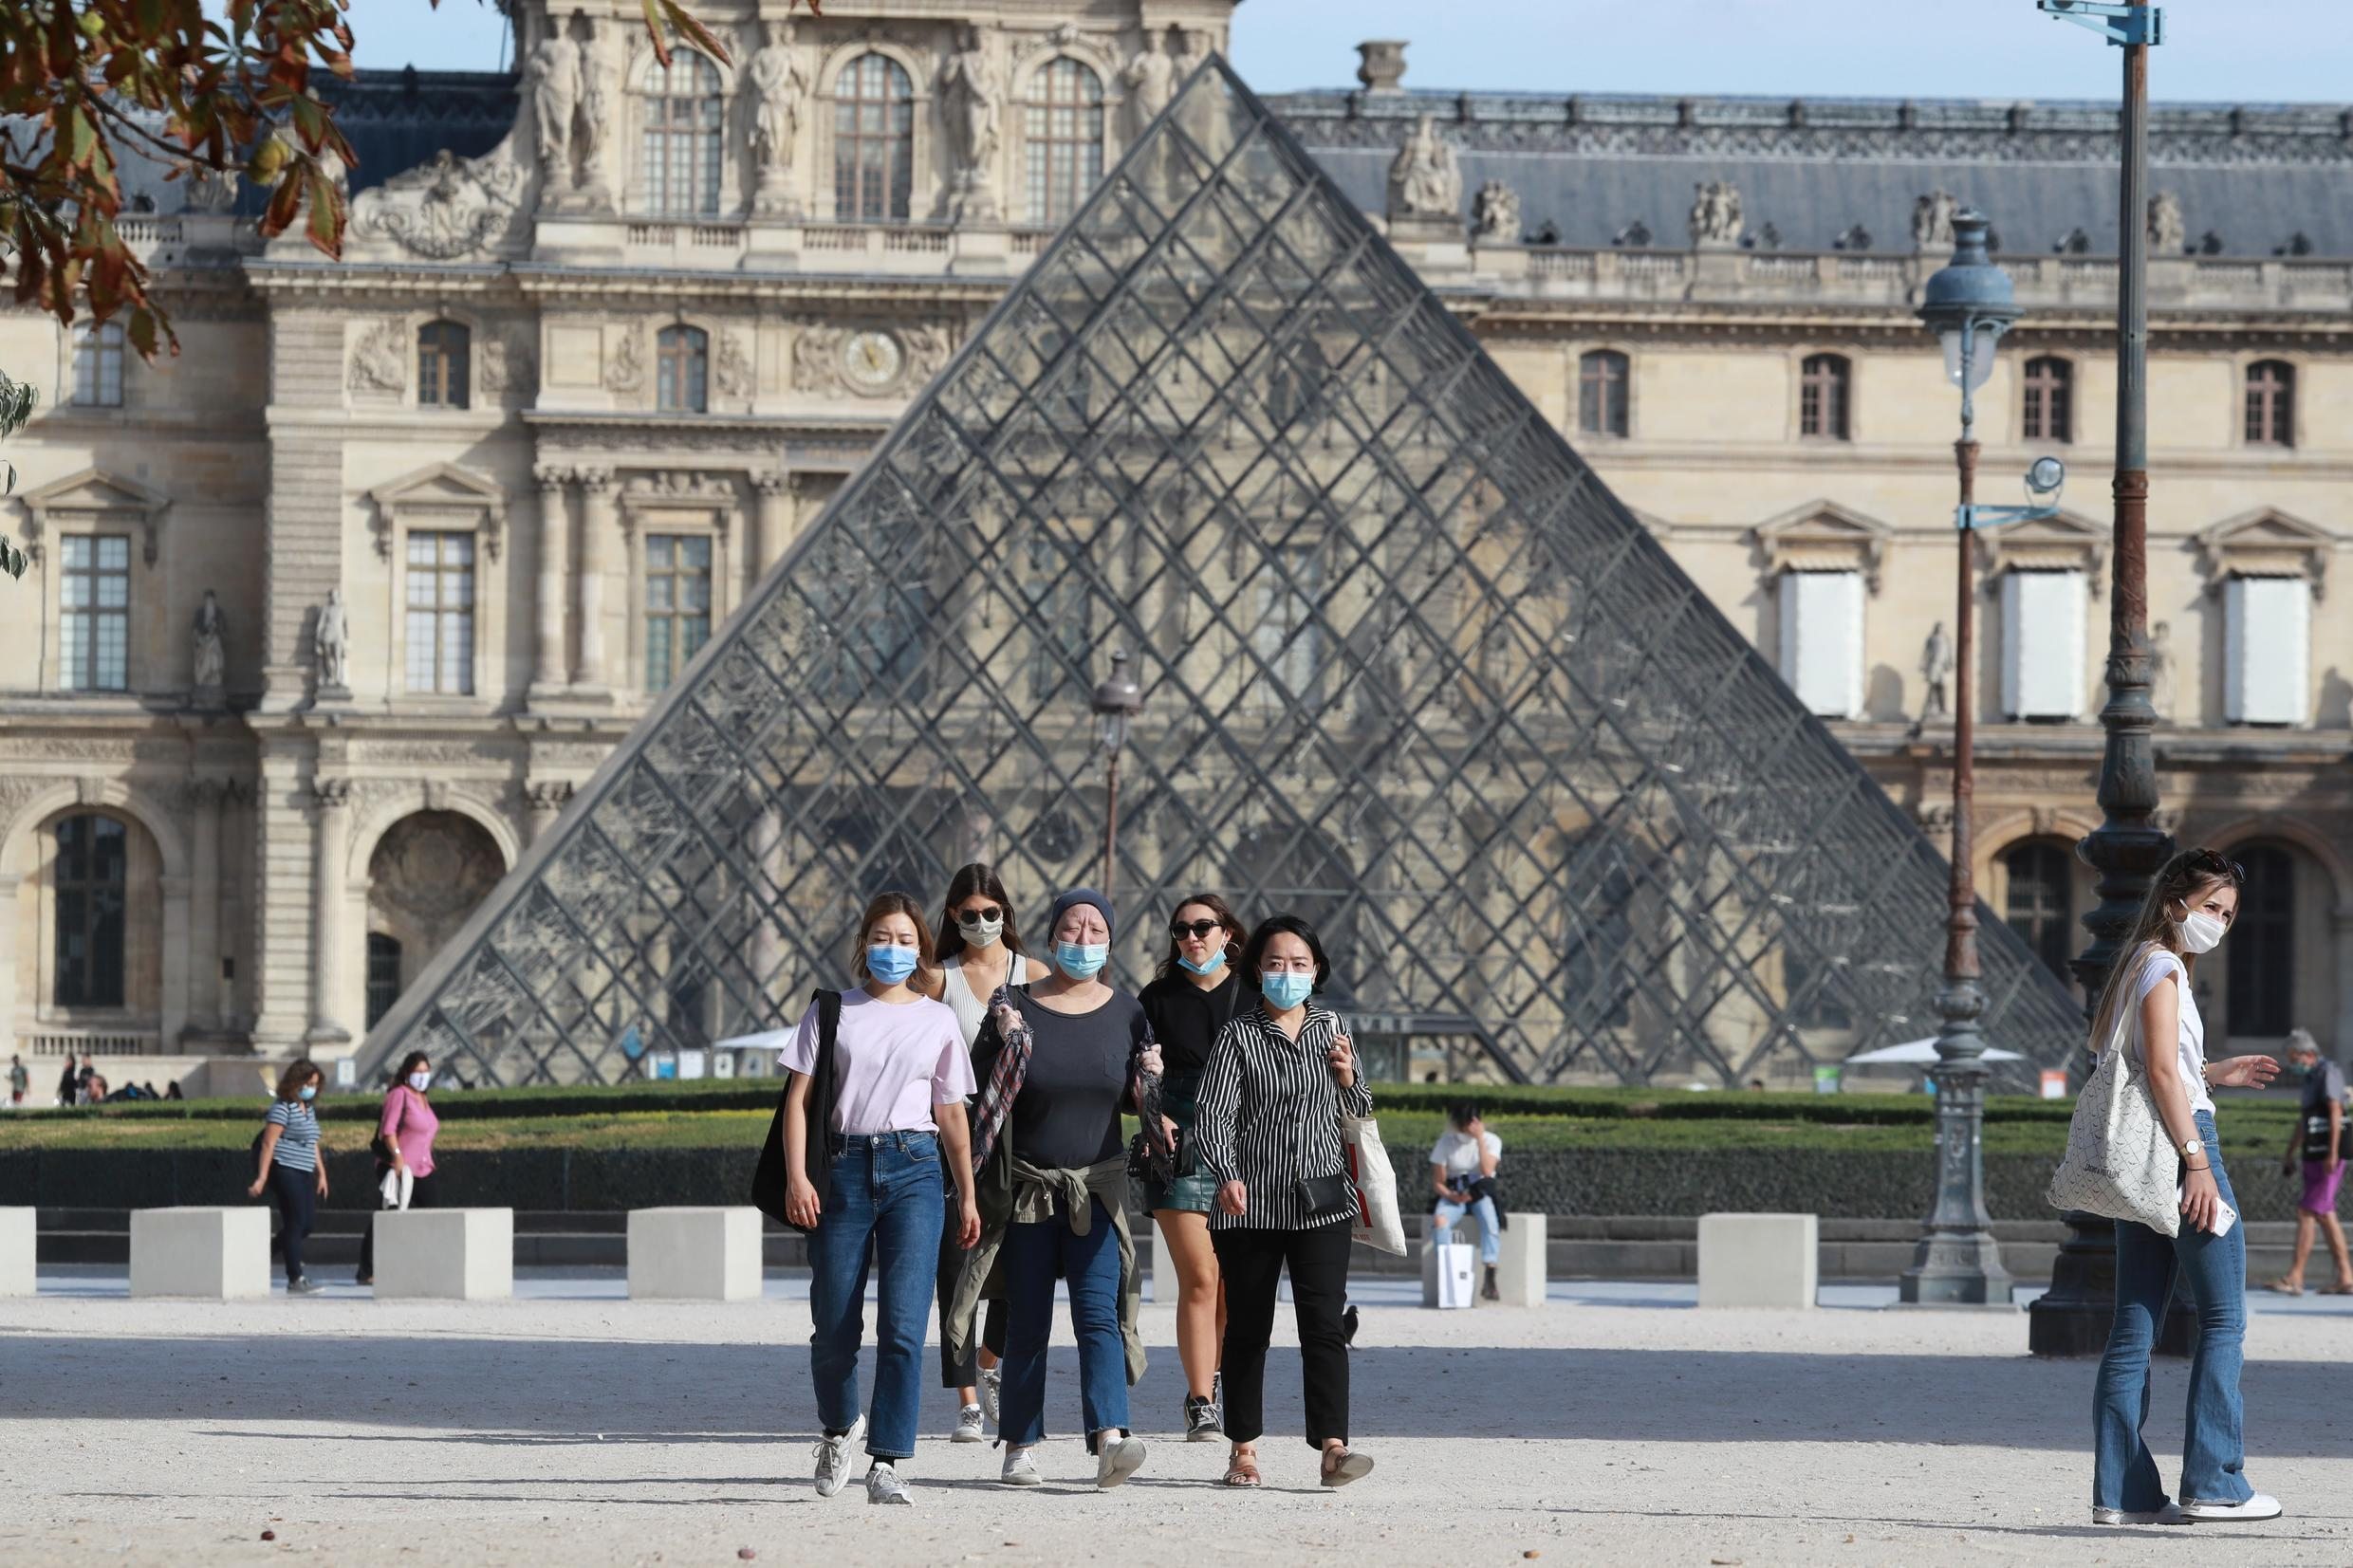 After nearly 230 years, the Louvre will be run by a woman for the first time